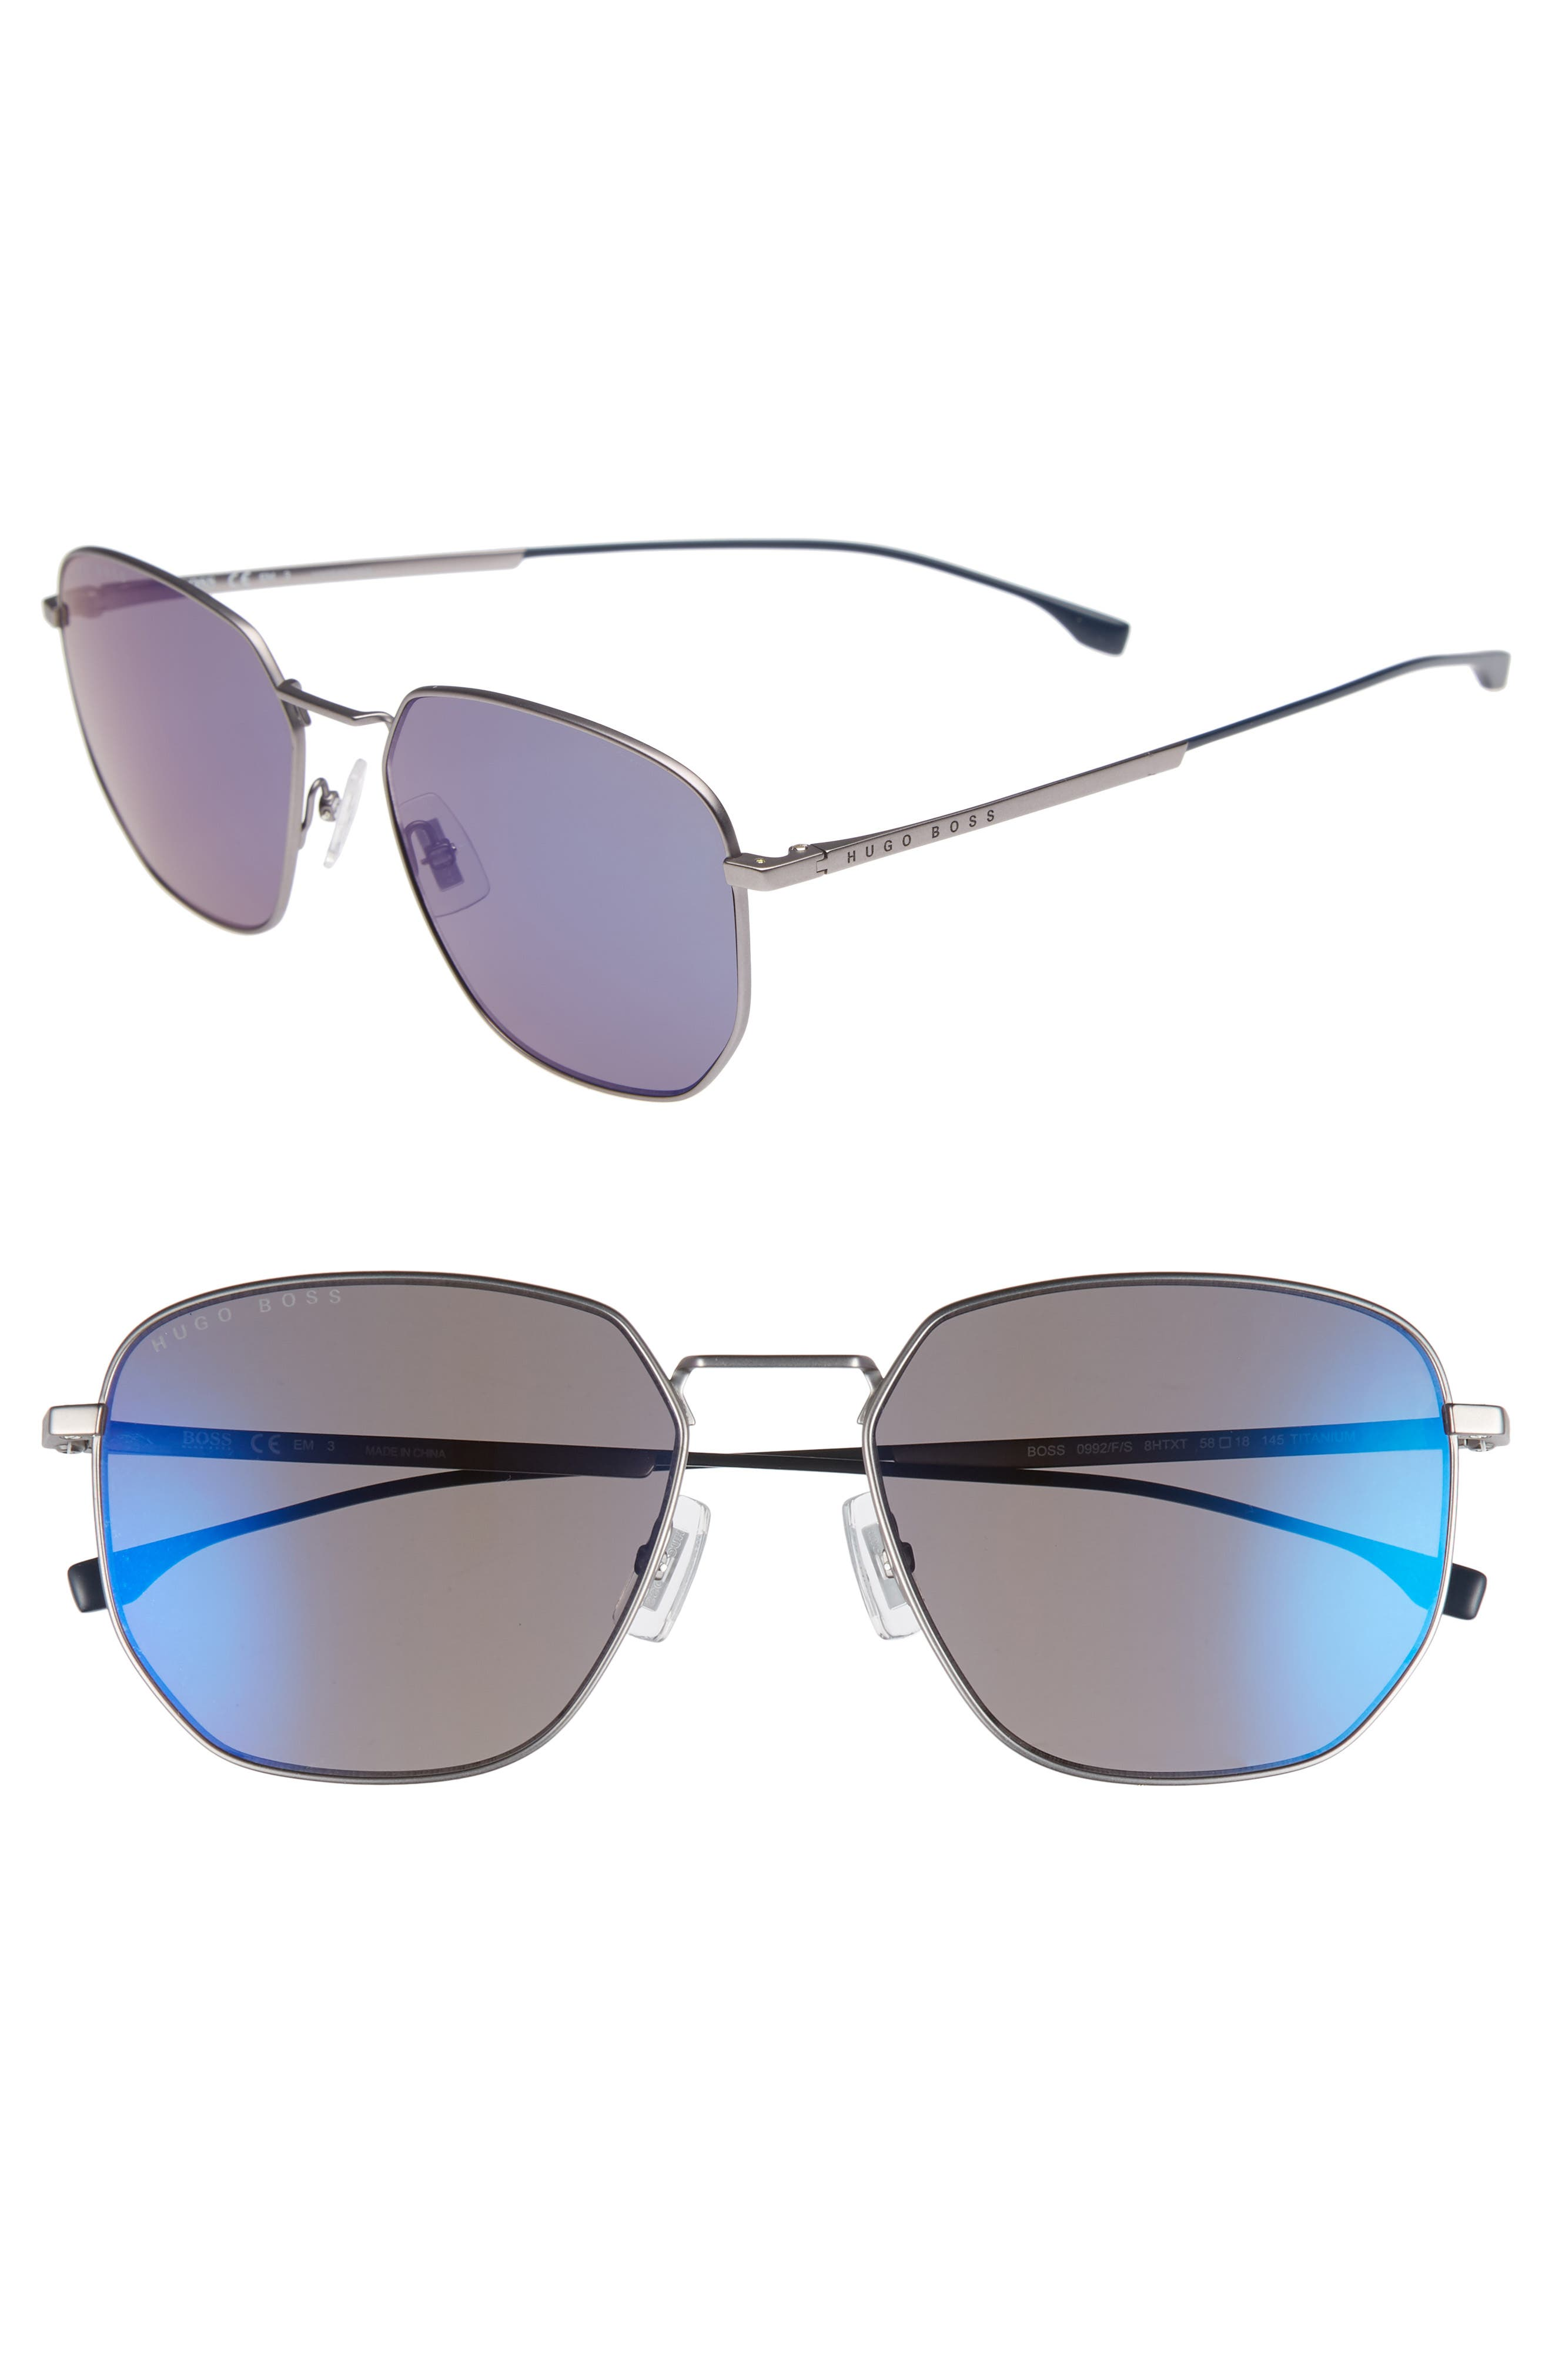 Special Fit 58mm Polarized Titanium Aviator Sunglasses,                         Main,                         color, Grey/ Blue